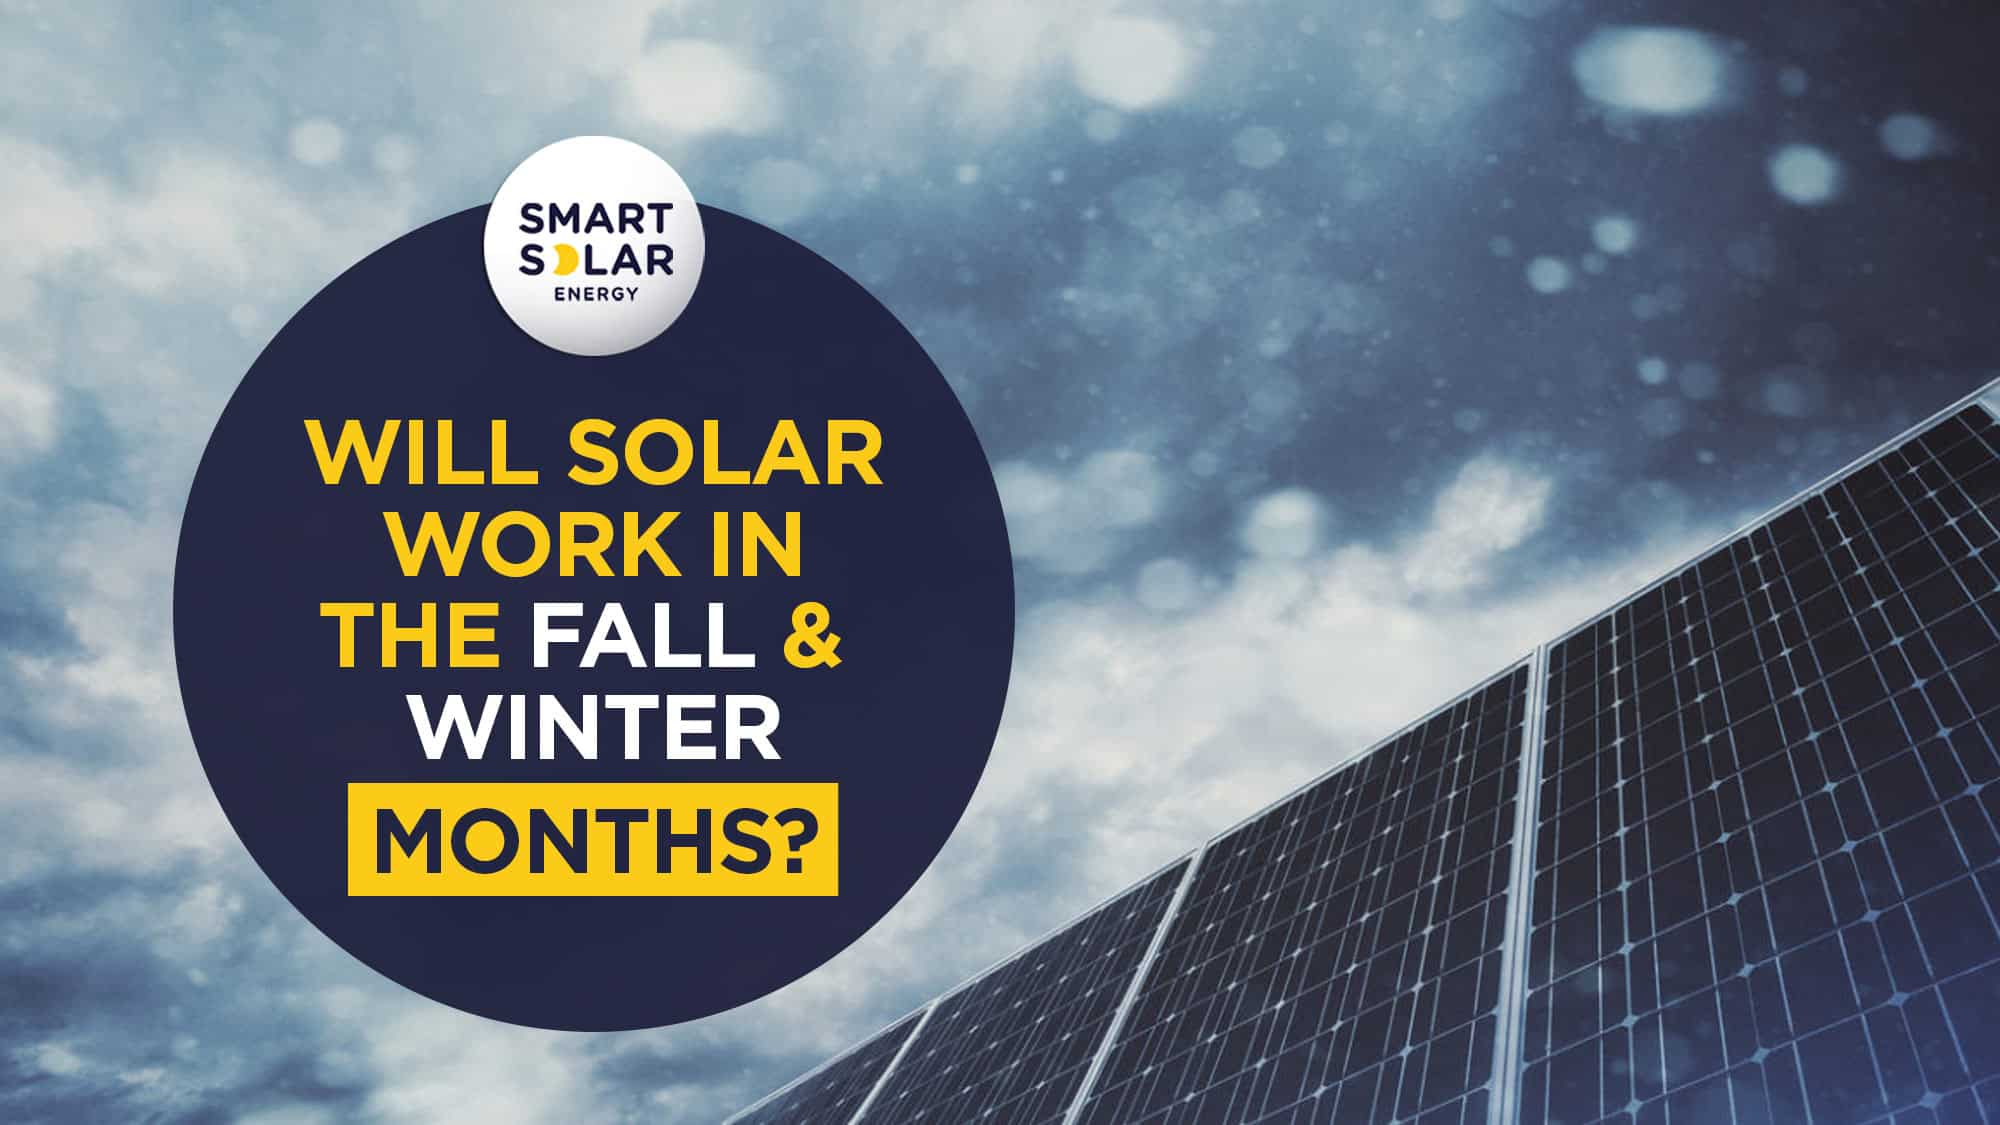 Will solar work in the fall & winter months?